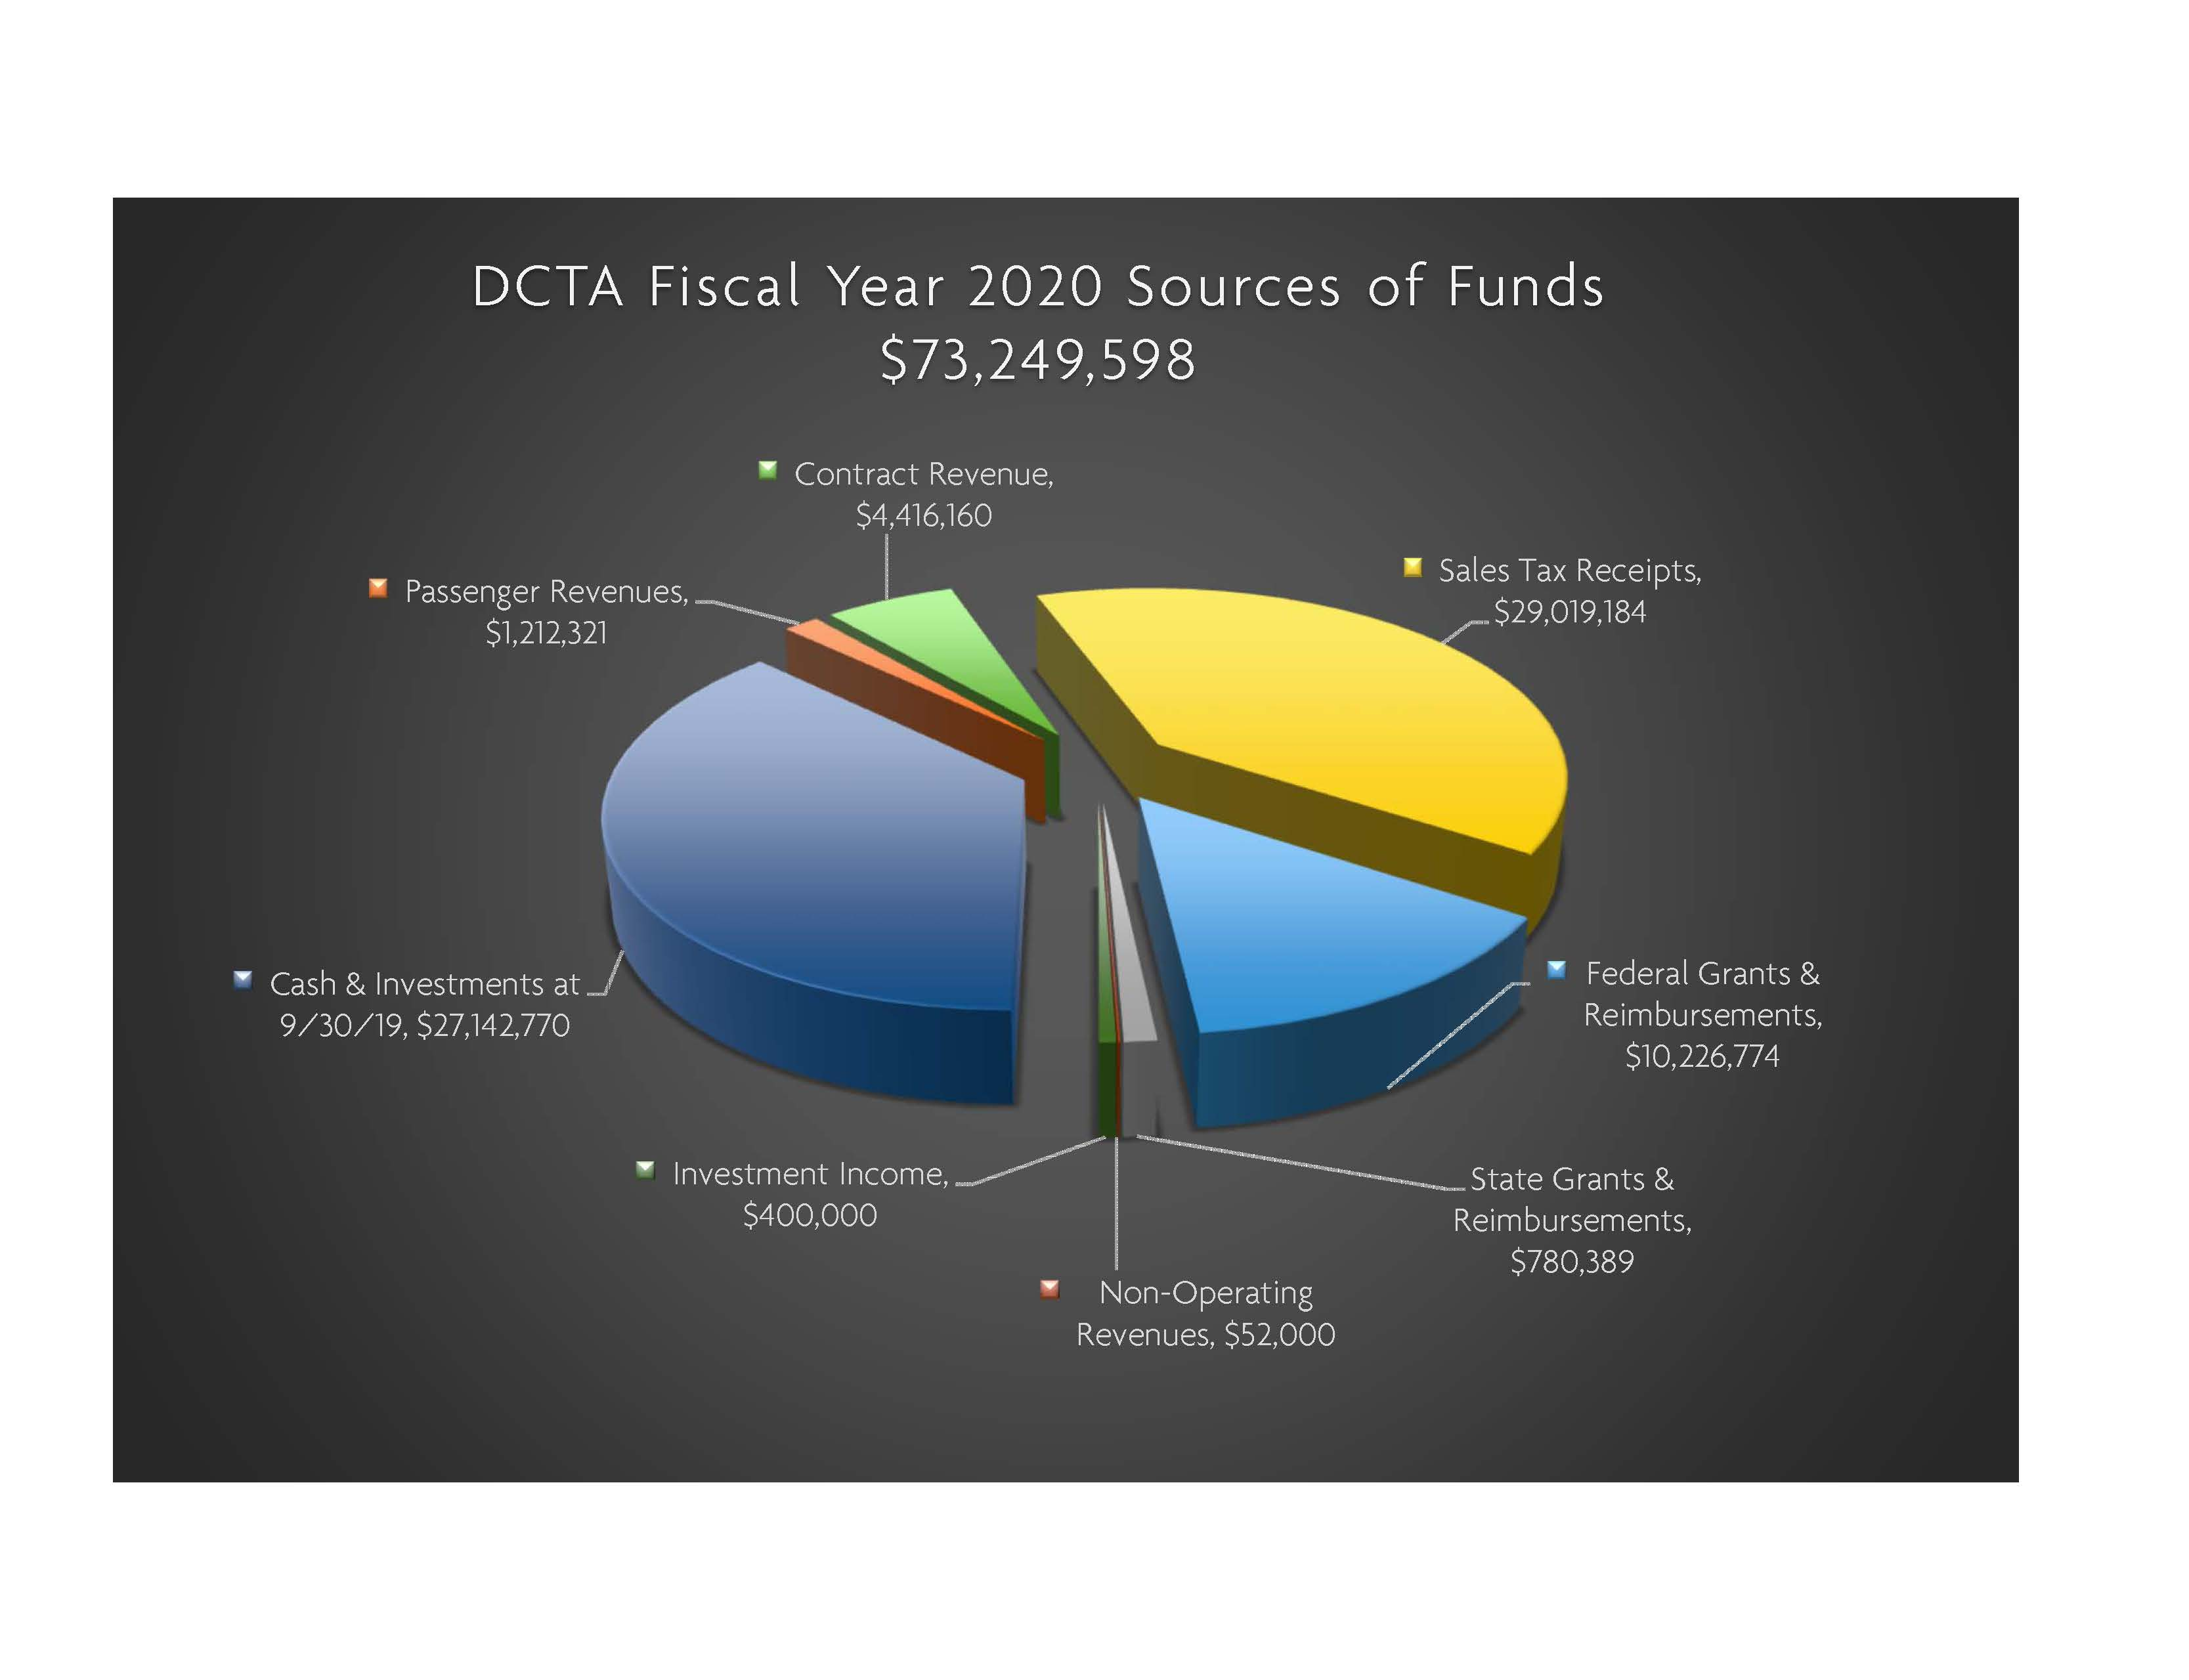 FY20 Sources of Funds